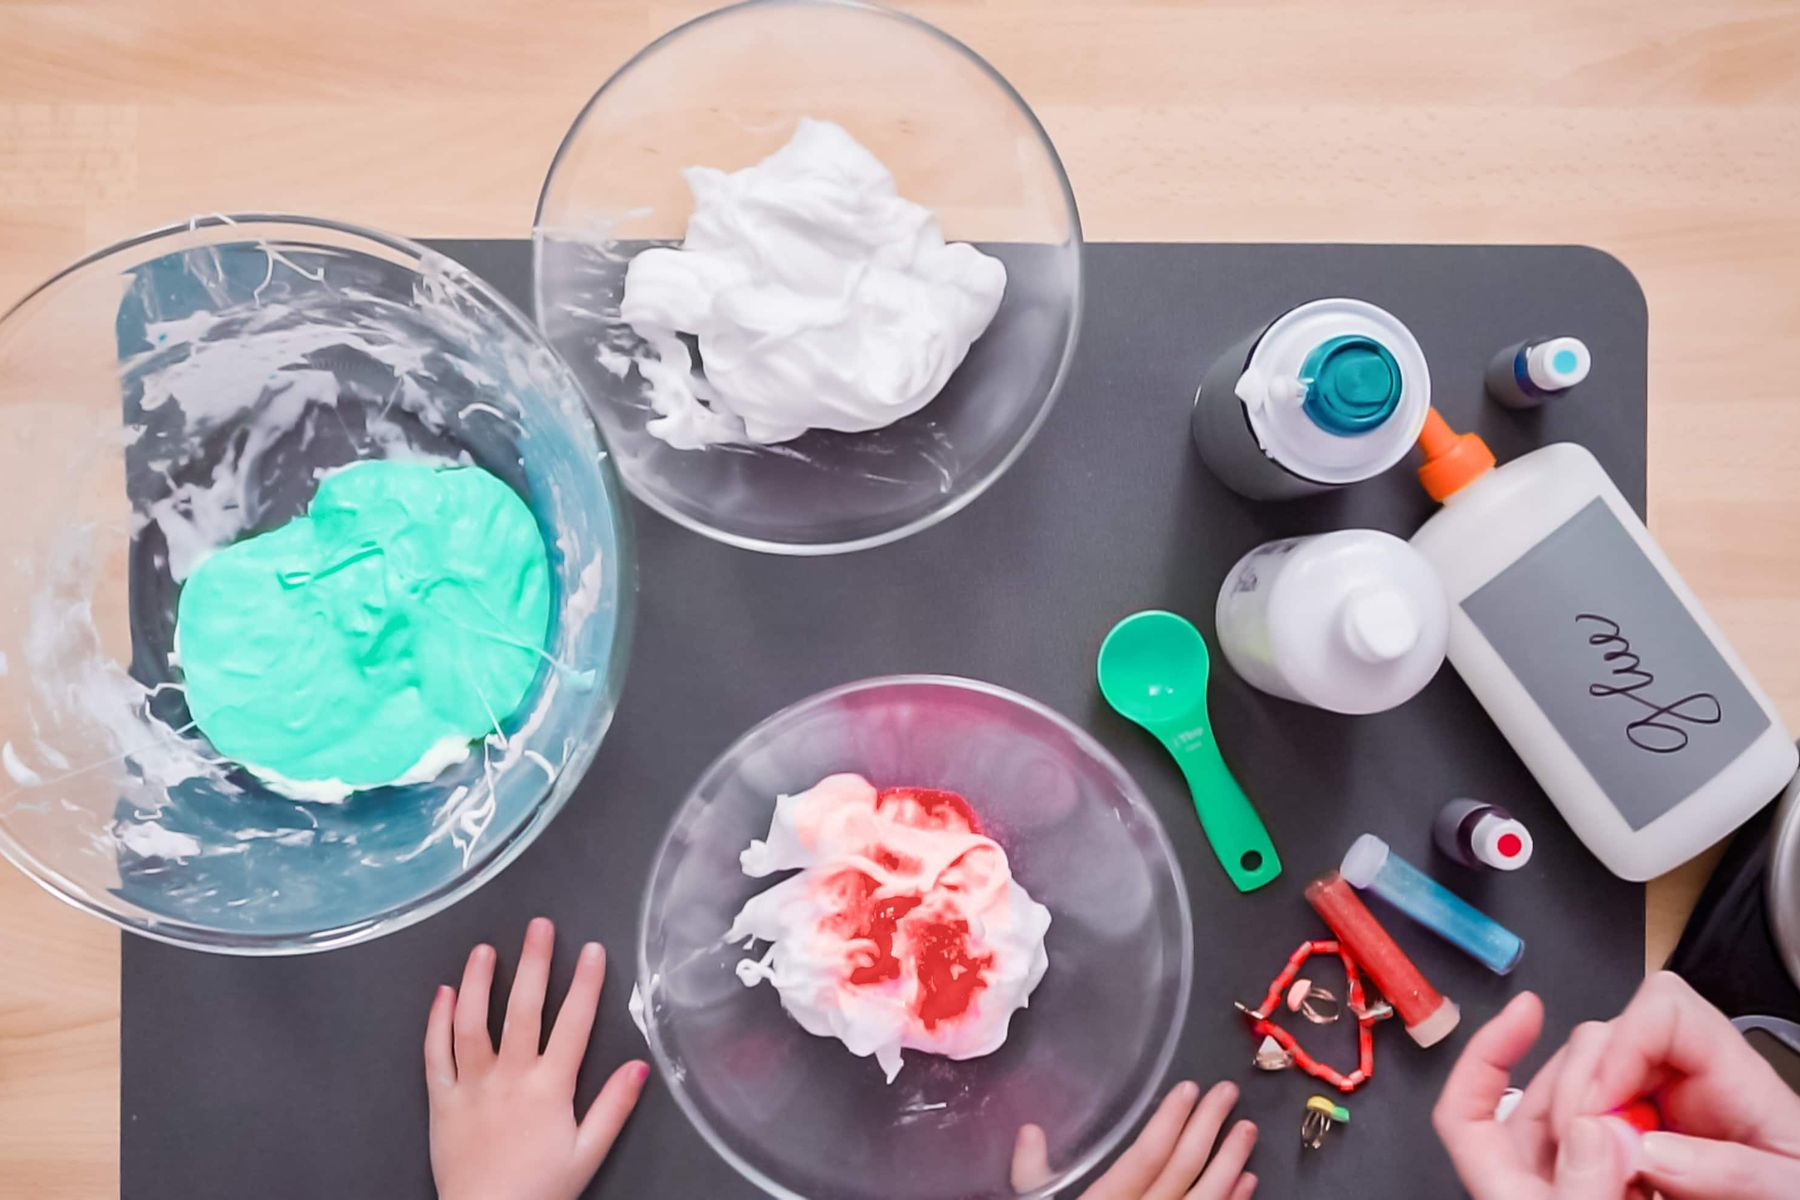 cleaning products in bowls on a table